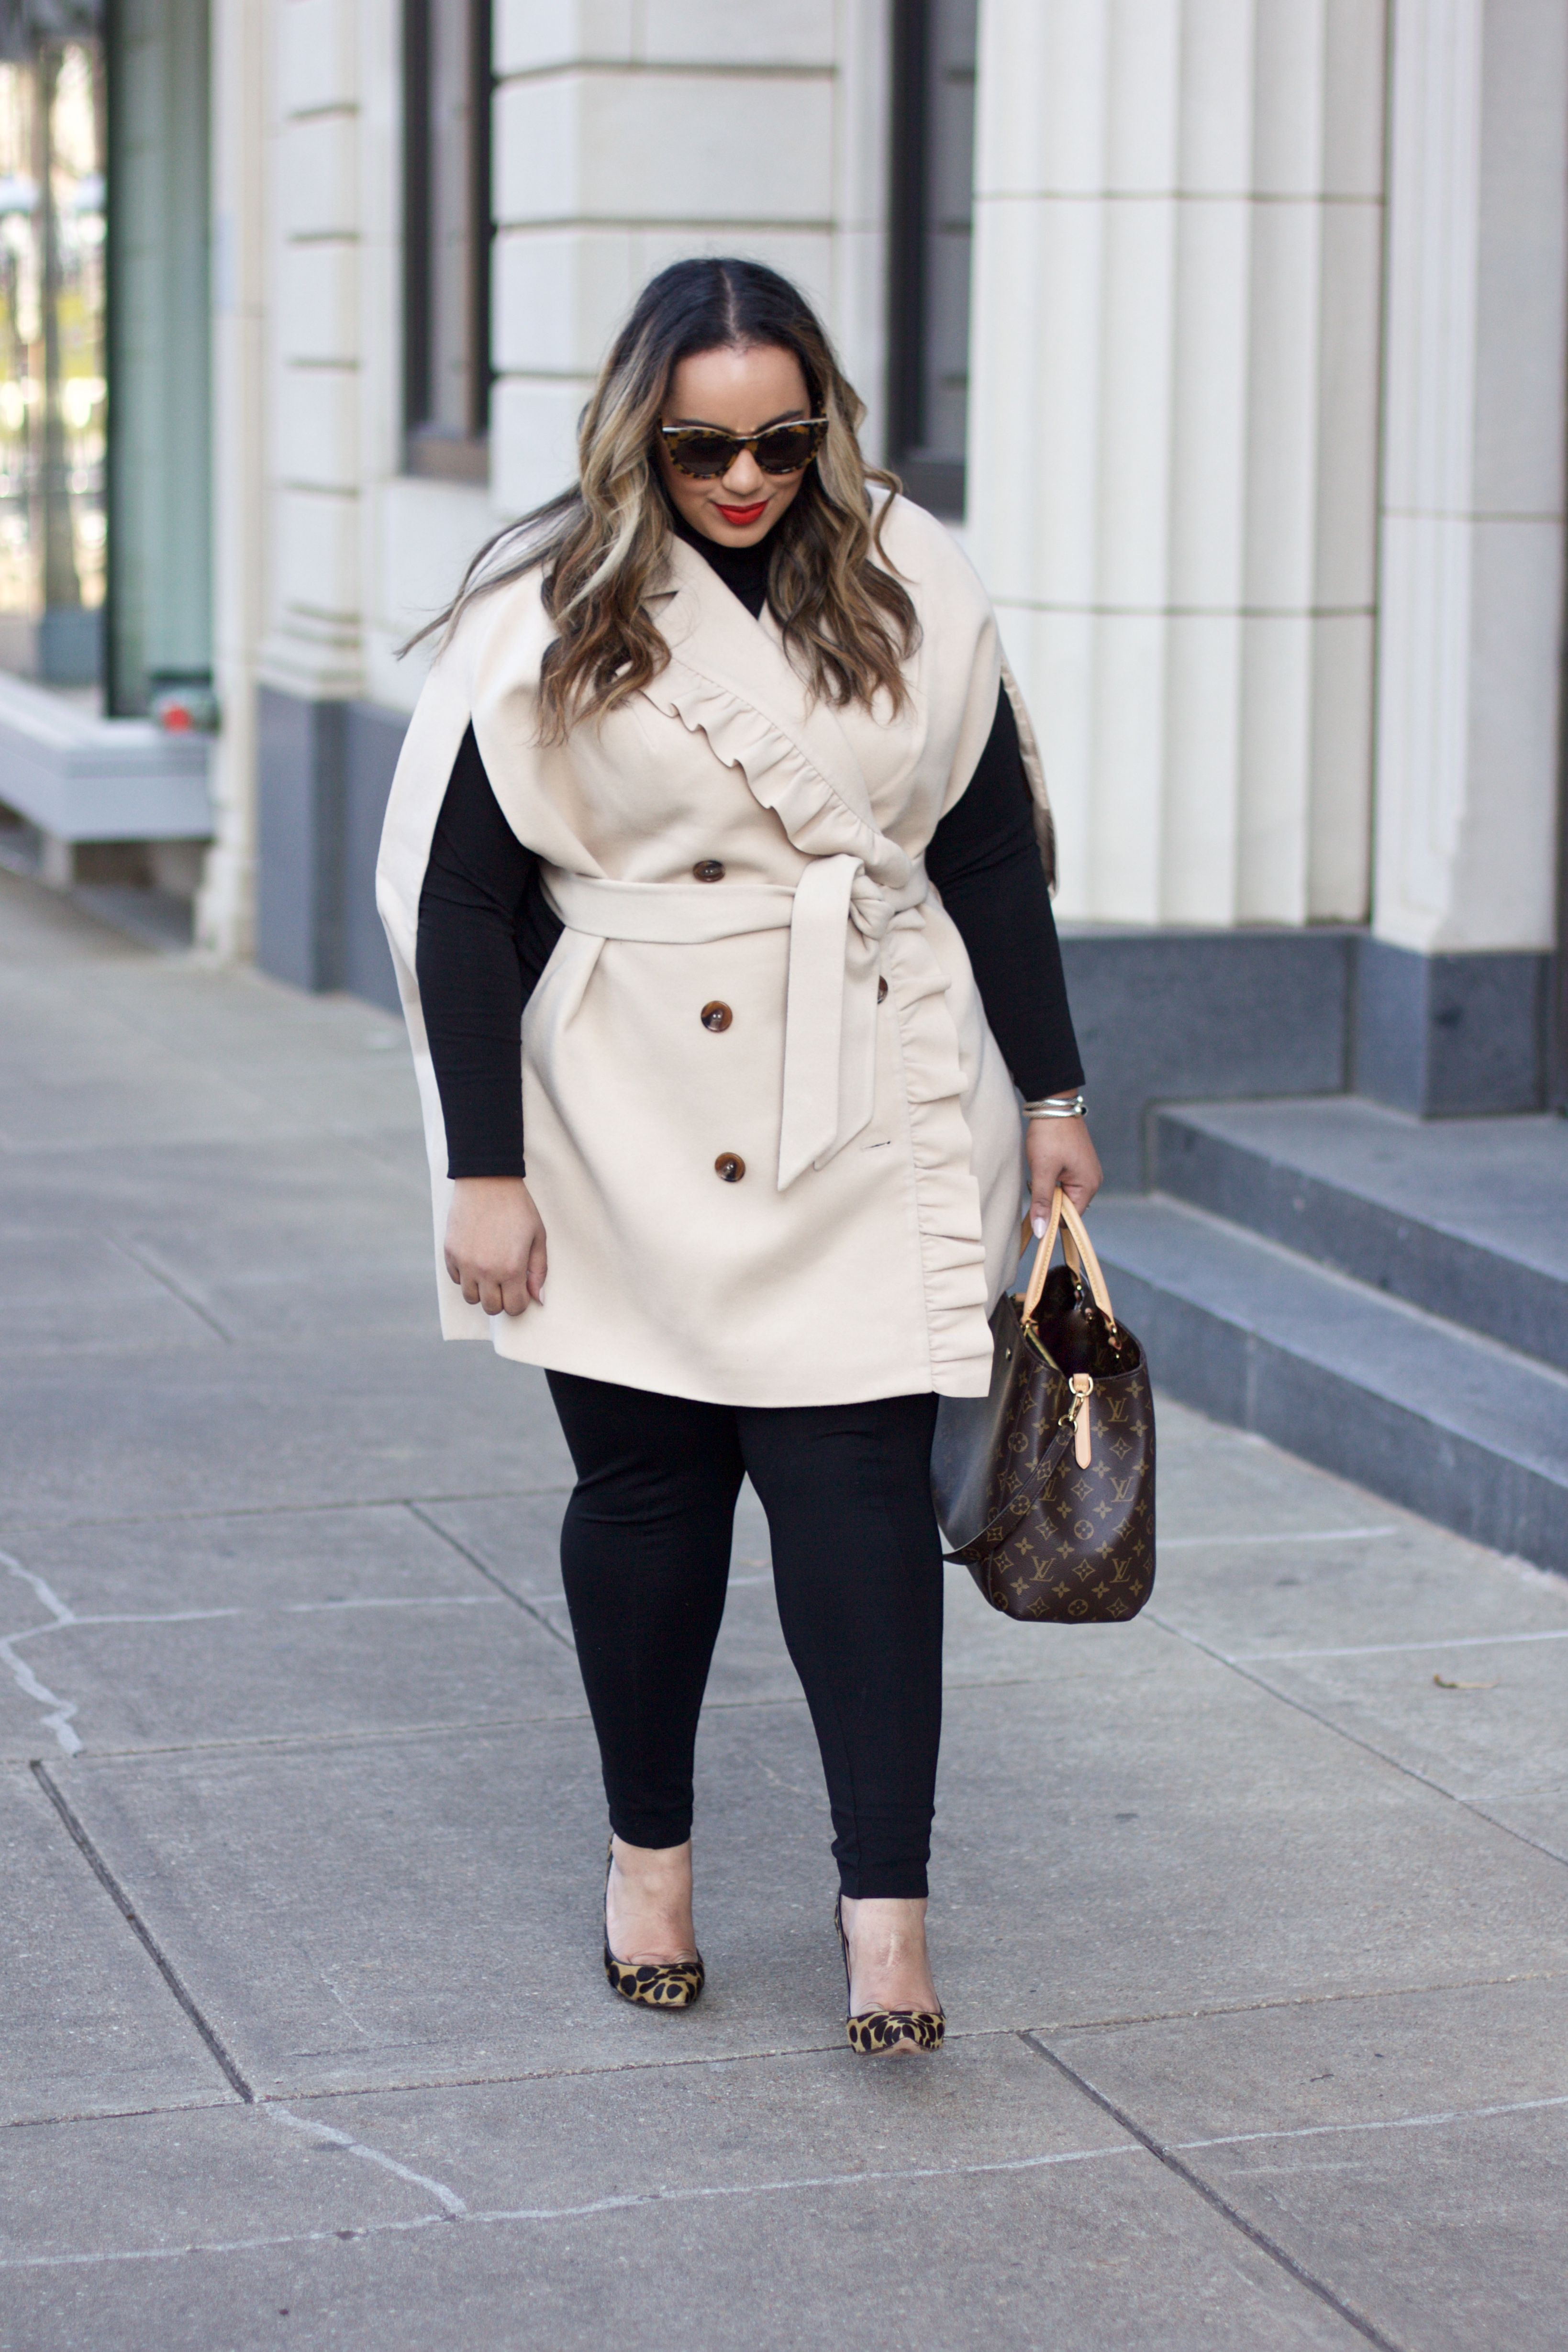 Find out more on fashion model, Trench coat